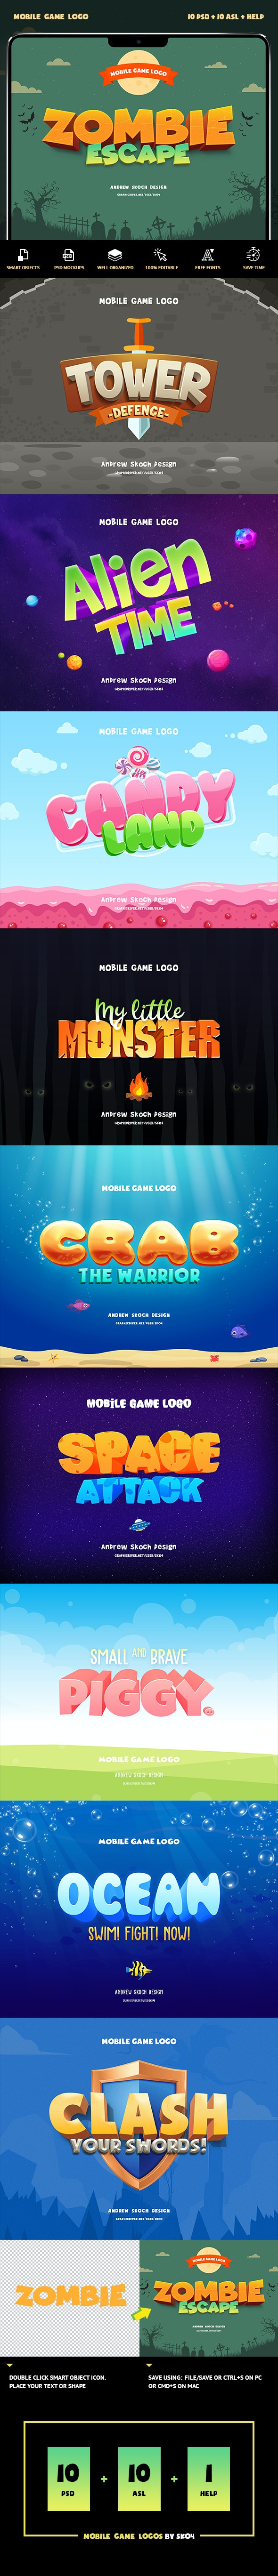 Game Titles Text Effects vol.1 - Text Effects Actions